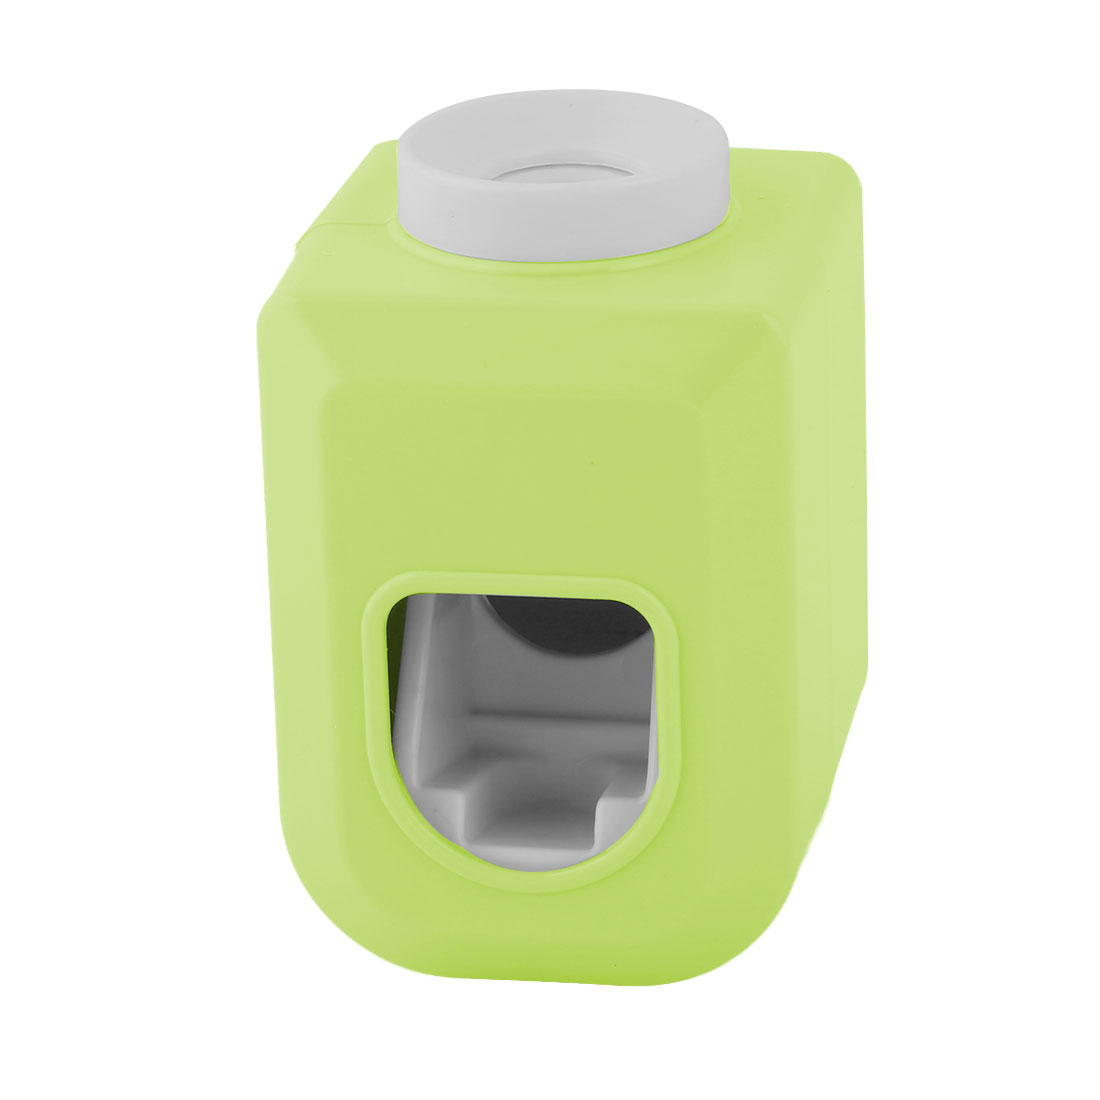 Household Bathroom Plastic Wall Sticker Pad Automatic Toothpaste Dispenser Green